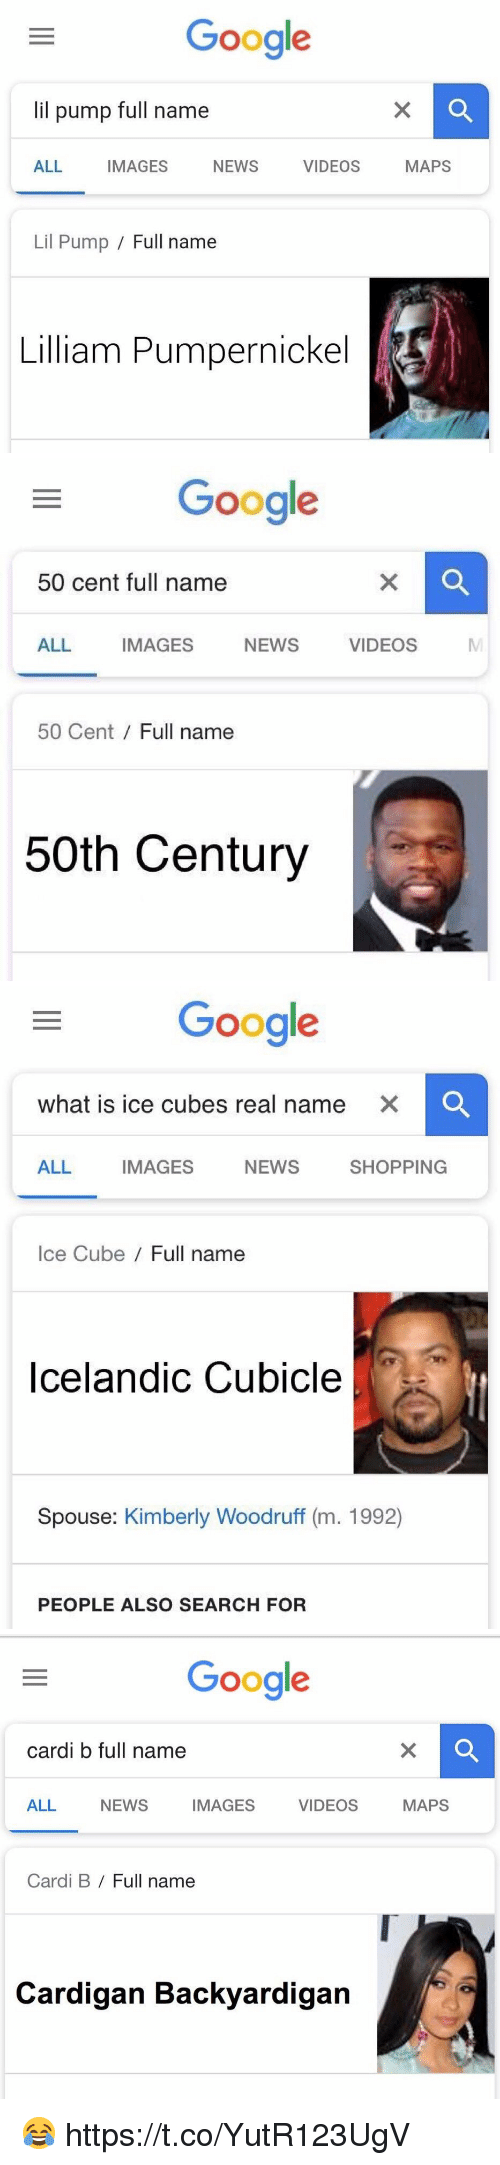 50 Cent, Google, and Ice Cube: Google  lil pump full name  ALL IMAGES NEWS VIDEOS MAPS  Lil Pump / Full name  Lilliam Pumpernickel   Google  50 cent full name  ALL IMAGES NEWS VIDEOS  MI  50 Cent Full name  50th Century   Google  what is ice cubes real name  XC  ALL IMAGES NEWS SHOPPING  Ice Cube/ Full name  Icelandic Cubicle  Spouse: Kimberly Woodruff (m. 1992)  PEOPLE ALSO SEARCH FOR   Google  cardi b full name  ALL NEWS IMAGES VIDEOS MAPS  Cardi B / Full name  Cardigan Backyardigan 😂 https://t.co/YutR123UgV